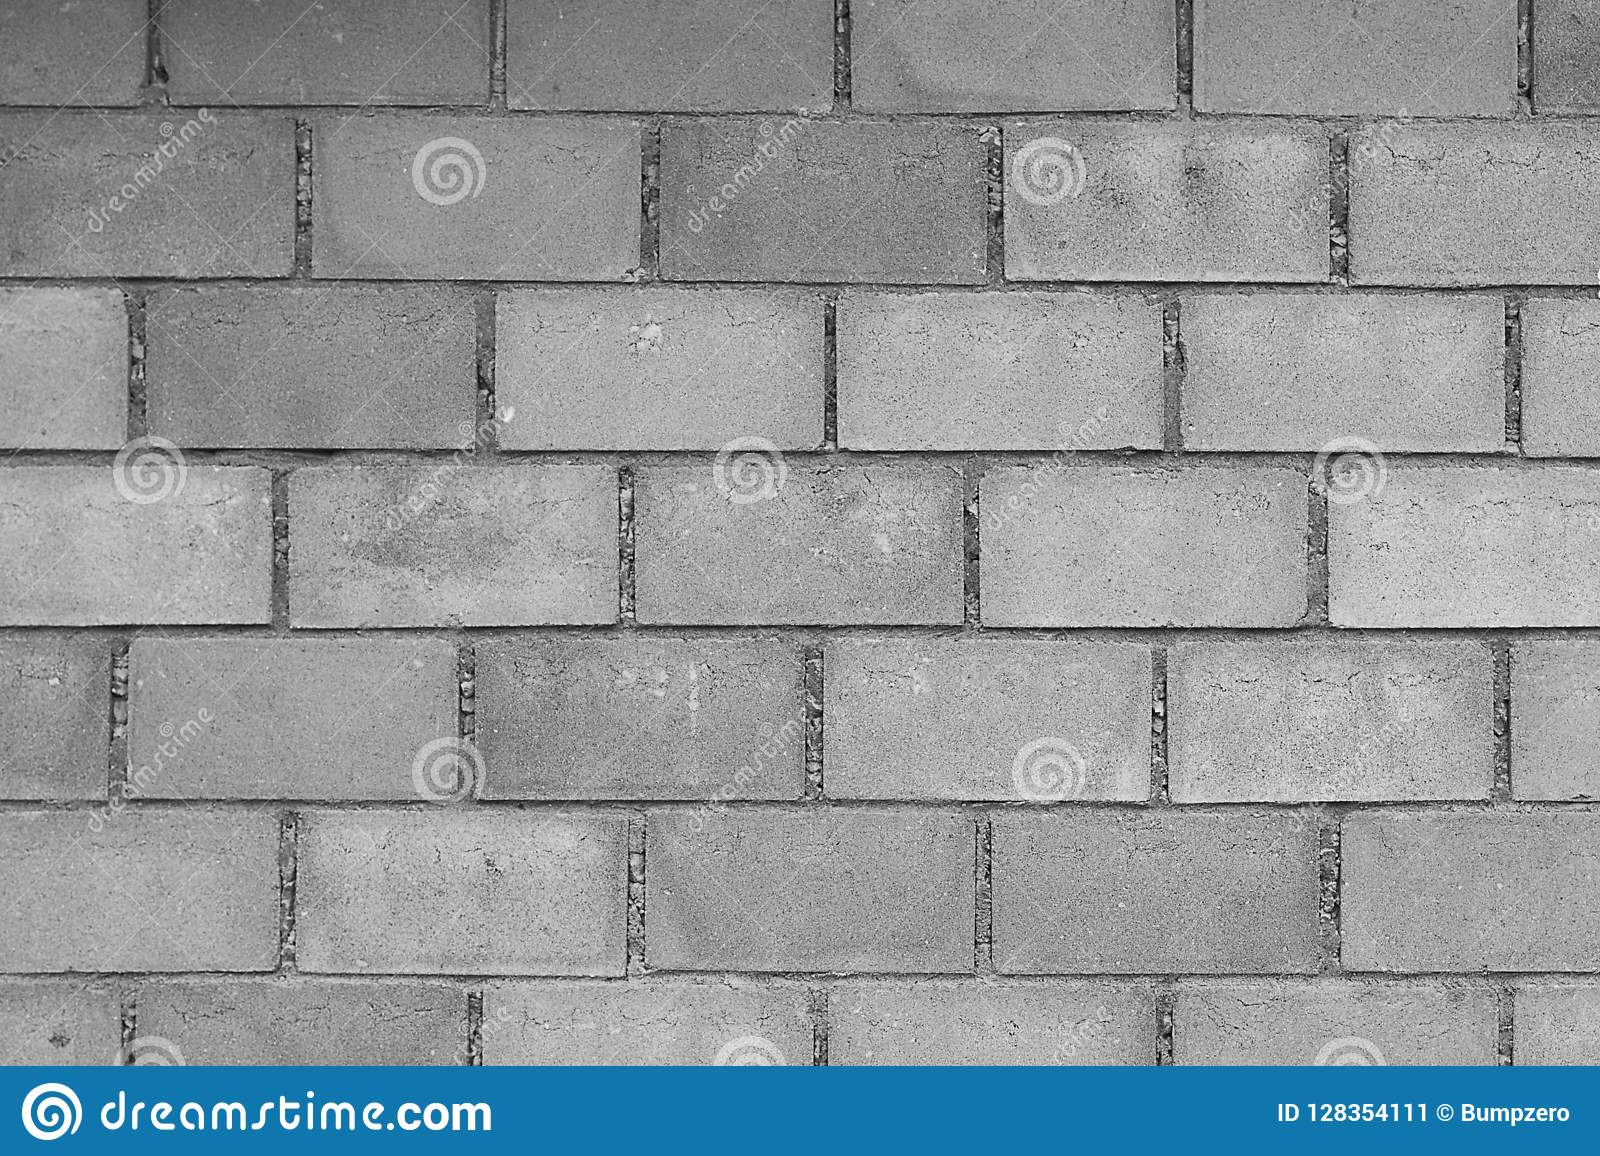 Concrete block wall background black and white